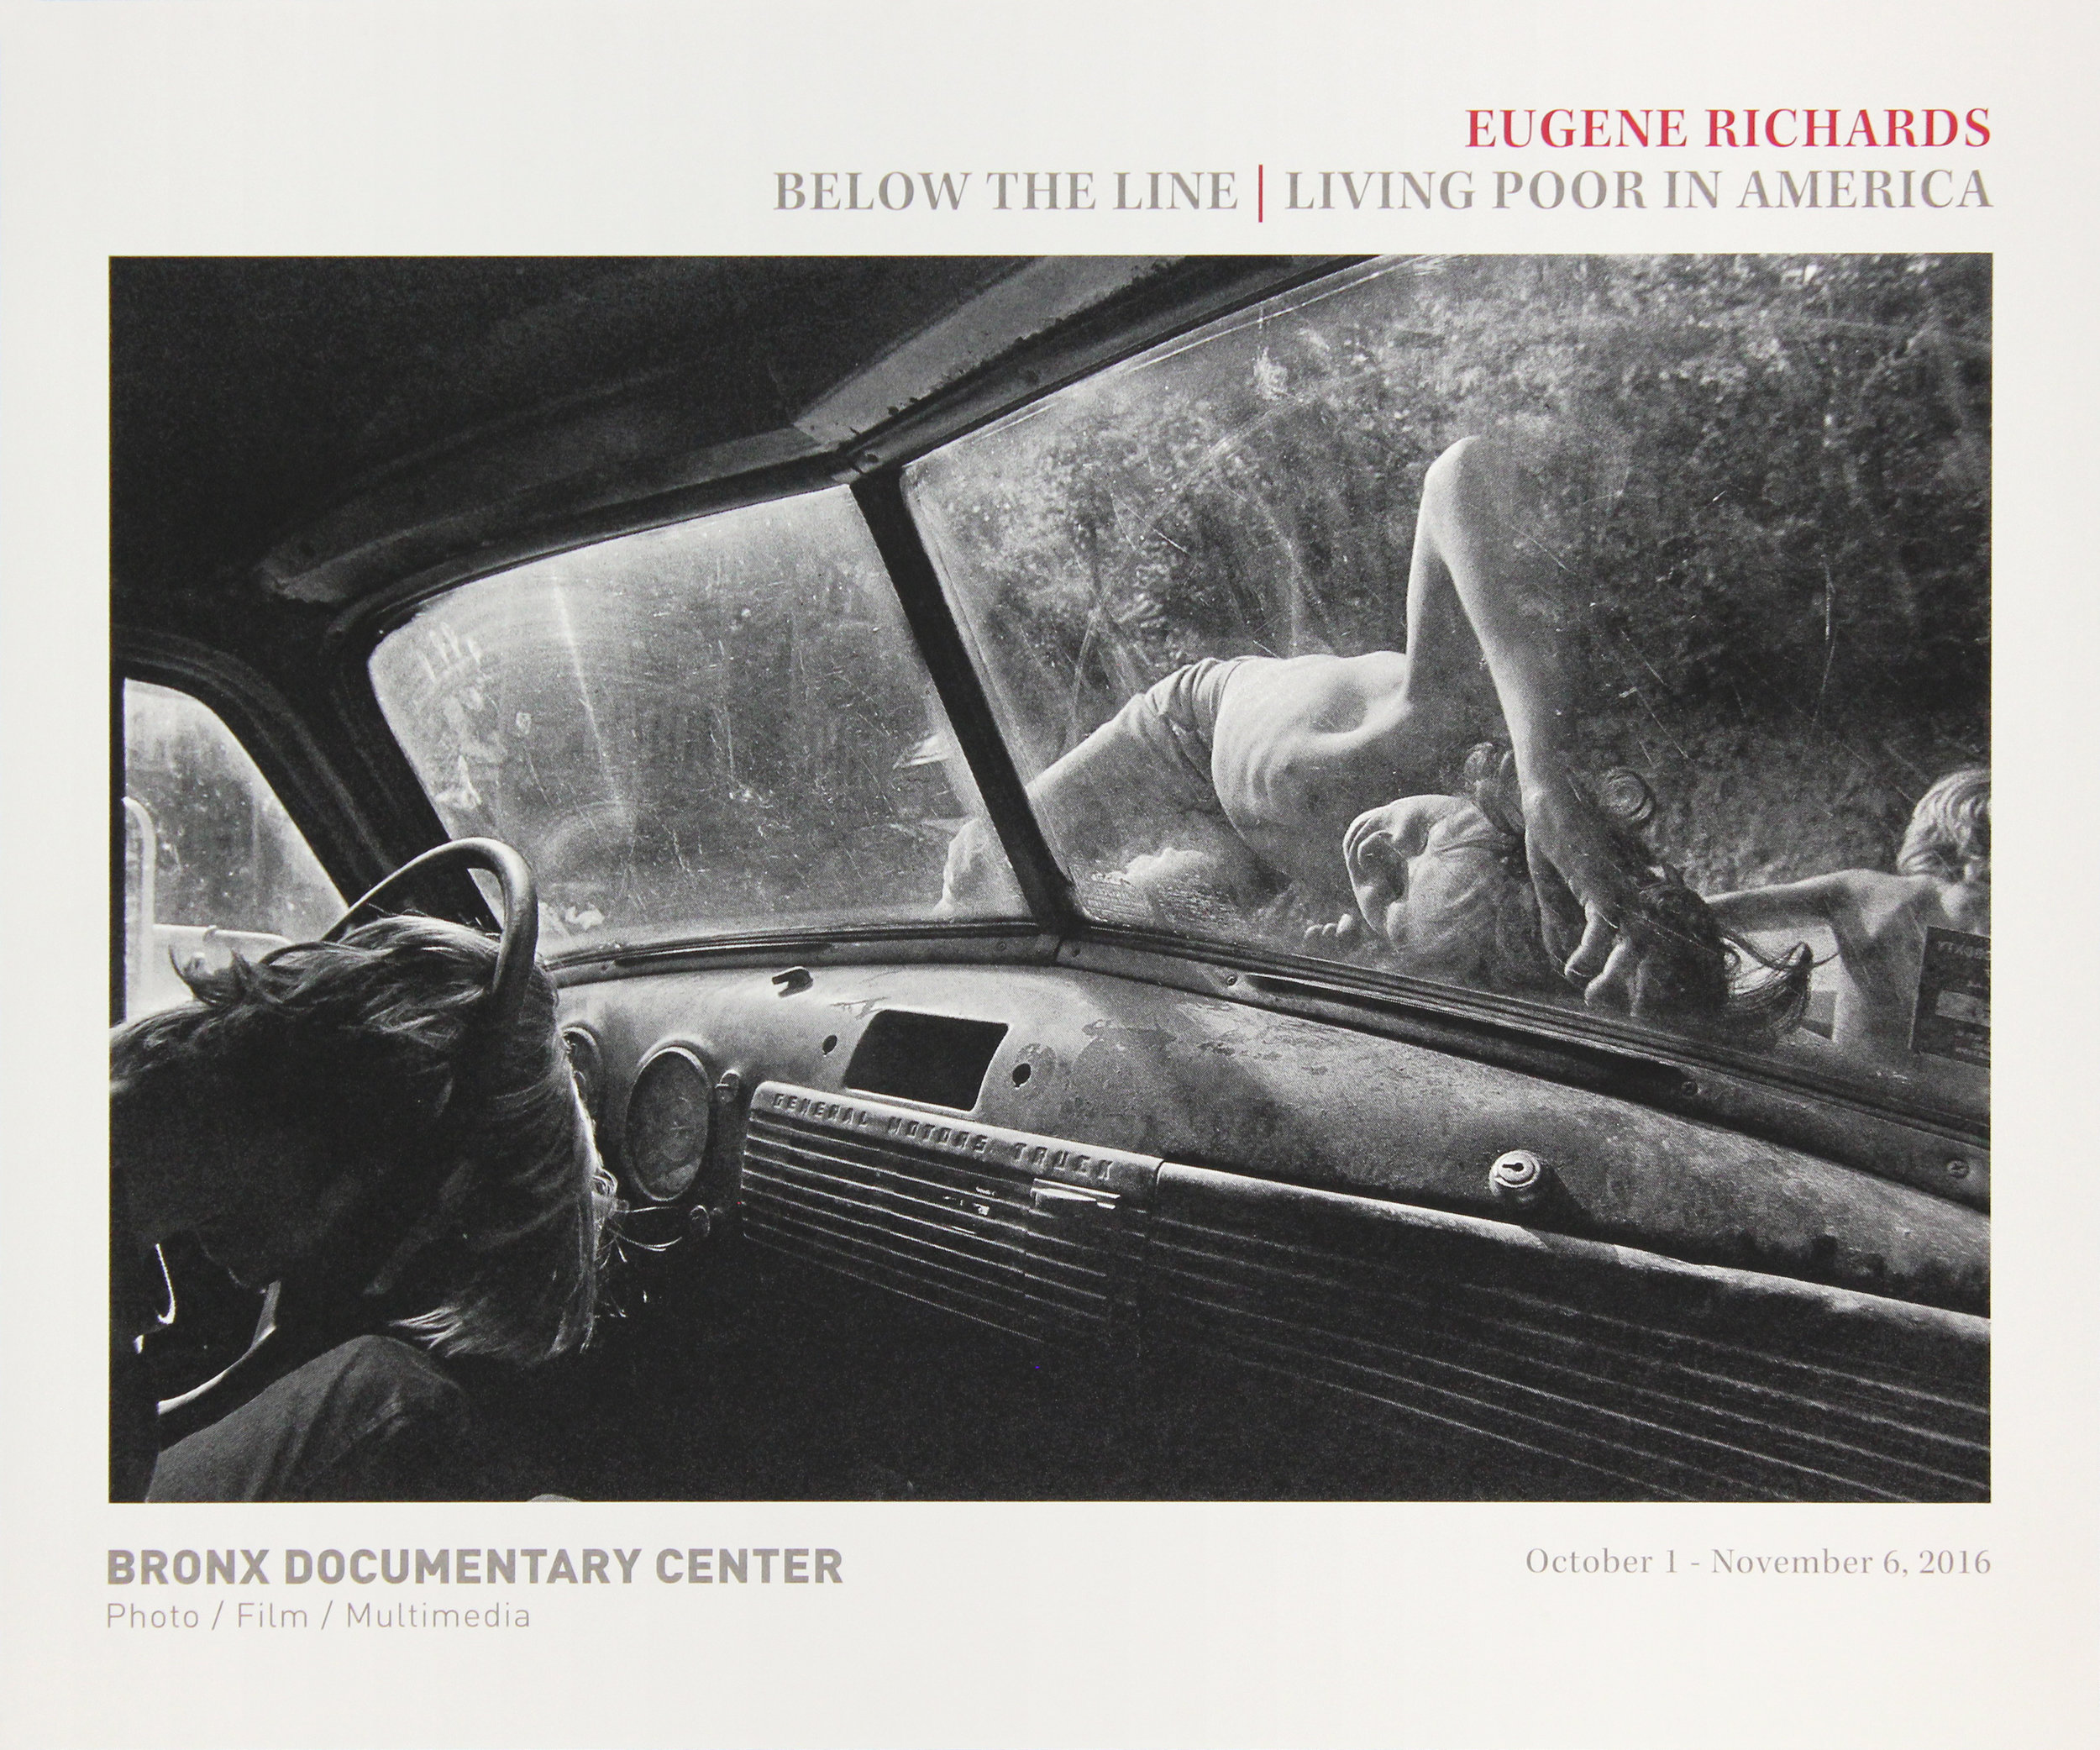 Bronx Doc Center - Eugene Richards // Below the Line: Living Poor in America